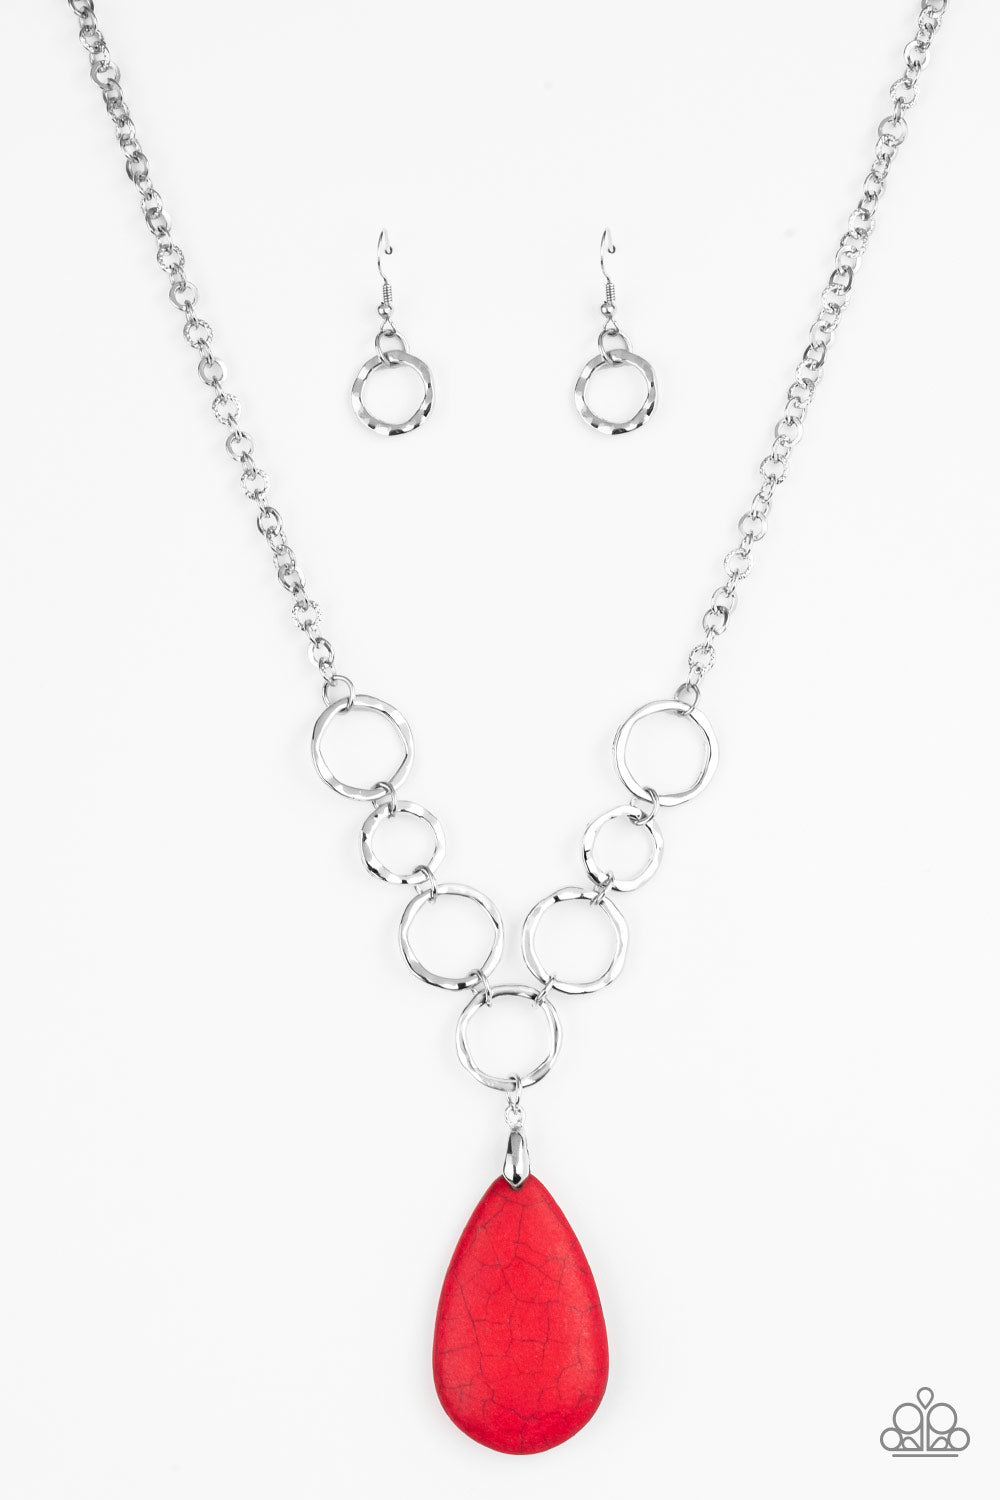 Paparazzi Accessories Livin On A PRAIRIE - Red Necklace - Be Adored Jewelry